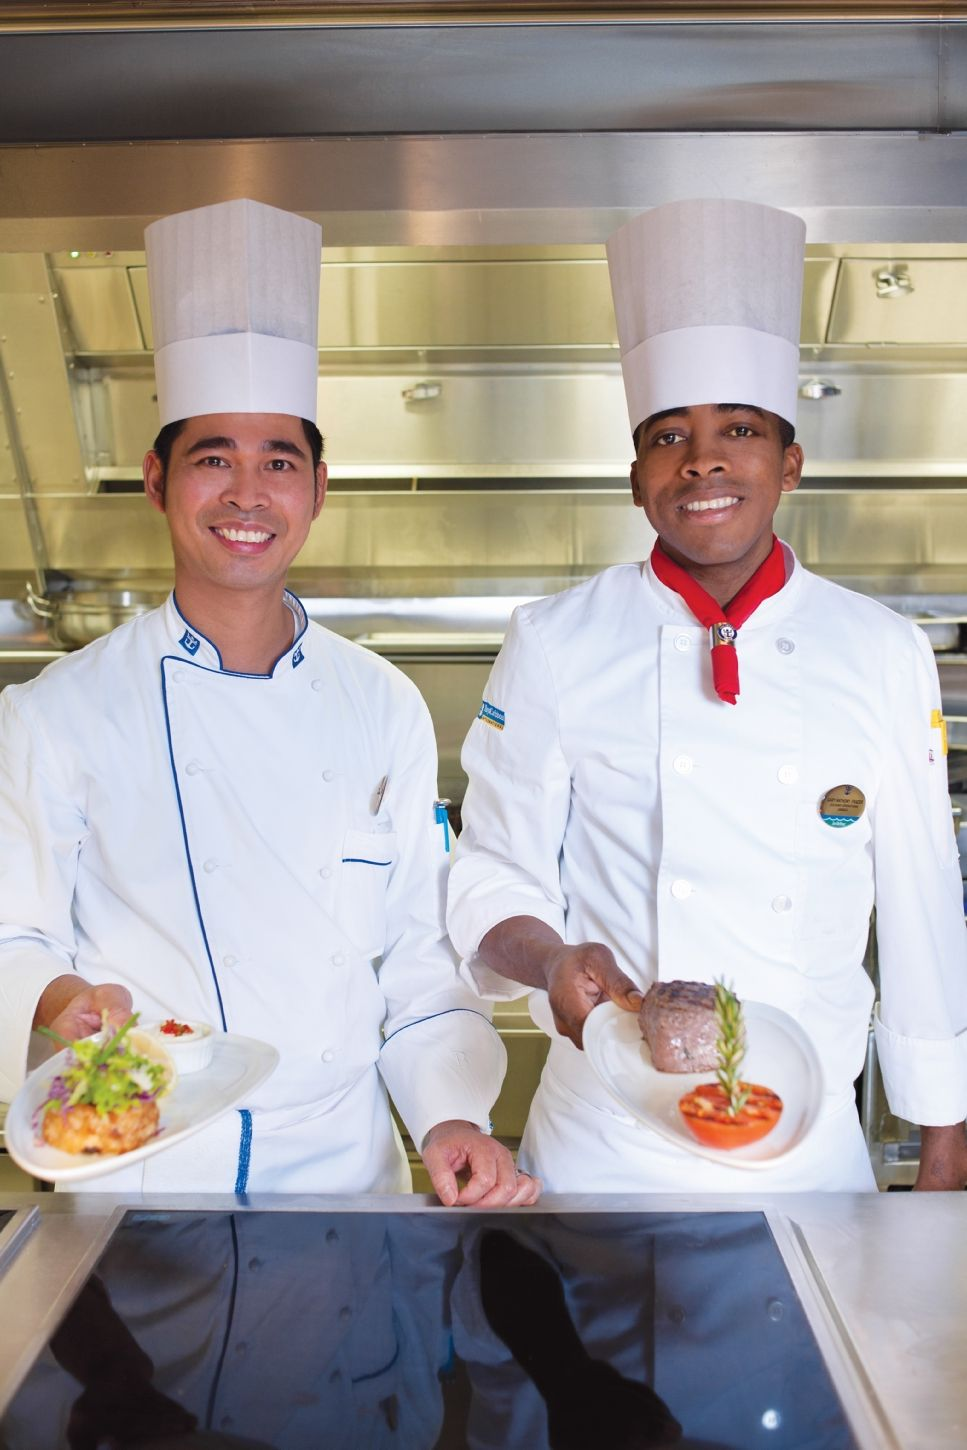 Chops Grille Chefs Onboard 'Allure Of The Seas'